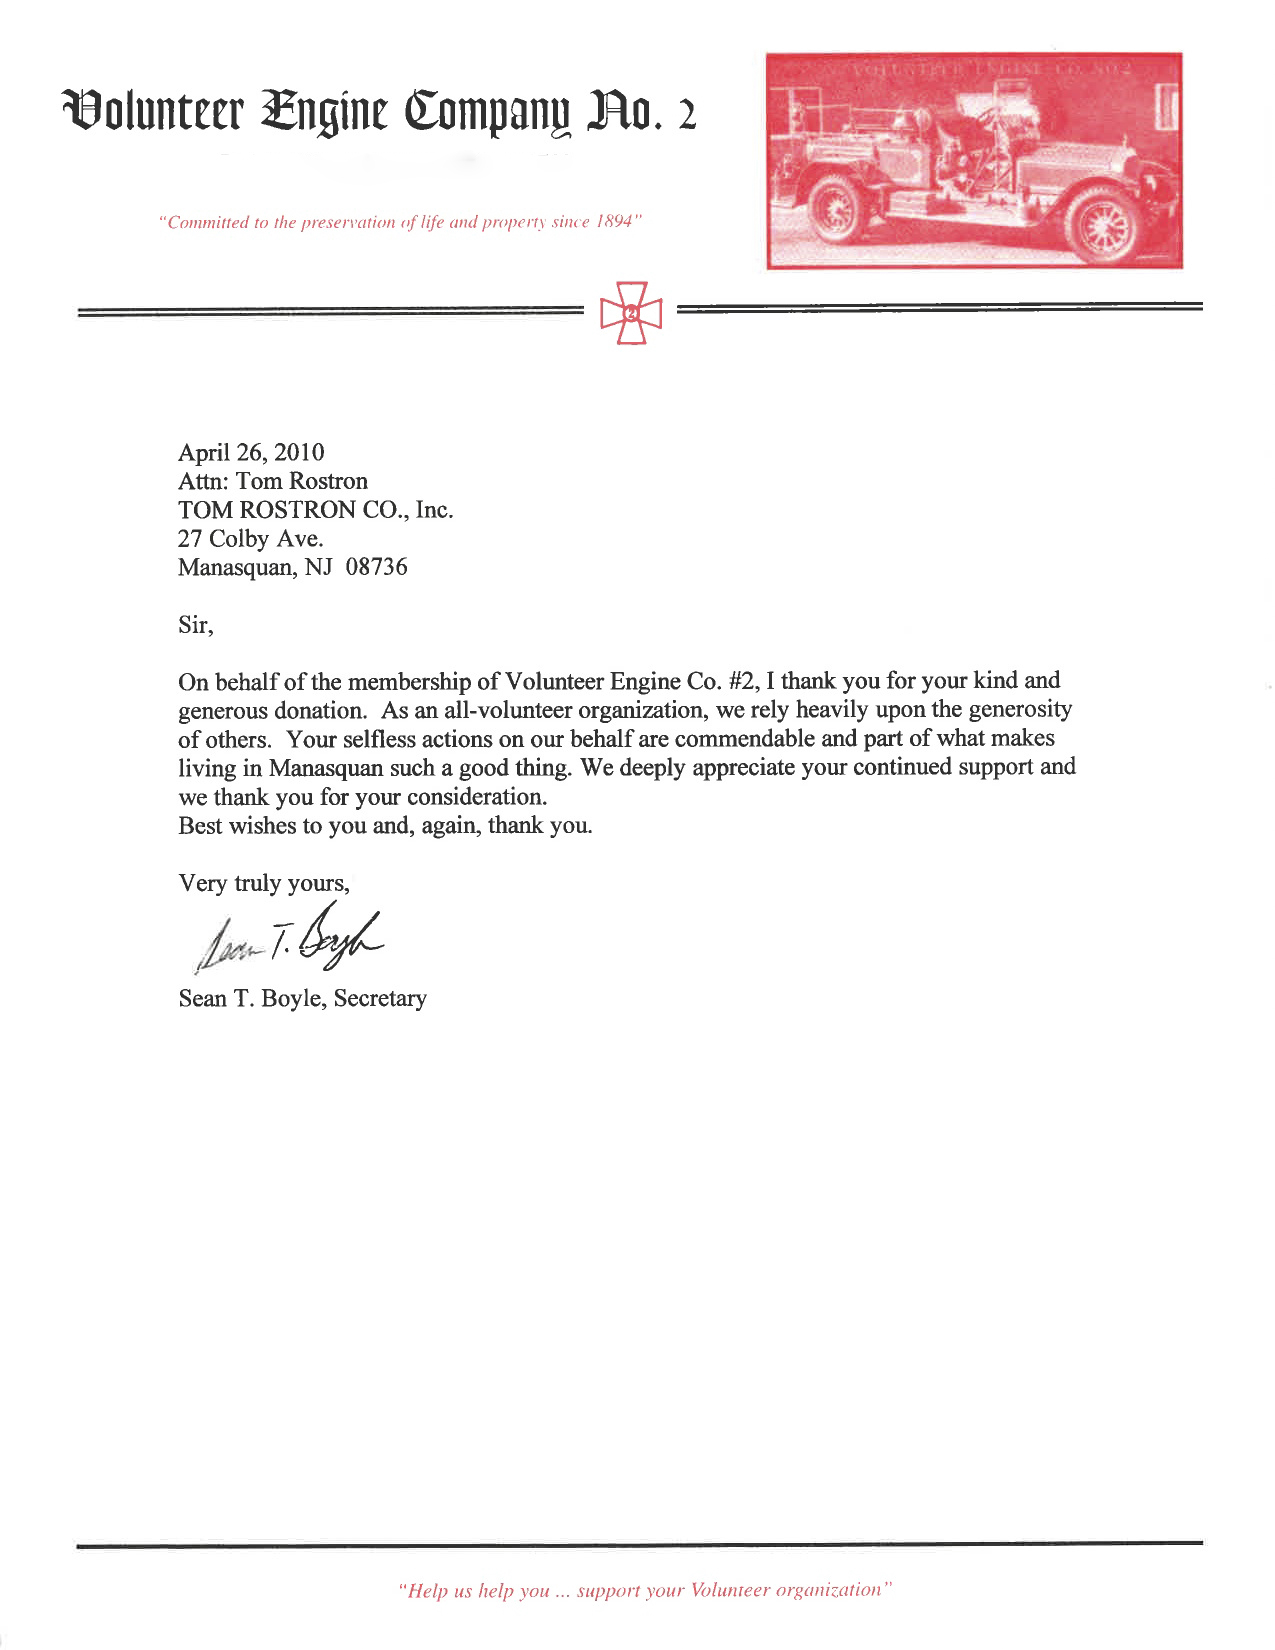 Selfless actions testimonial tom rostron monmouth nj sean t boyles letter to tom rostron thanking him for his generous donation aljukfo Image collections